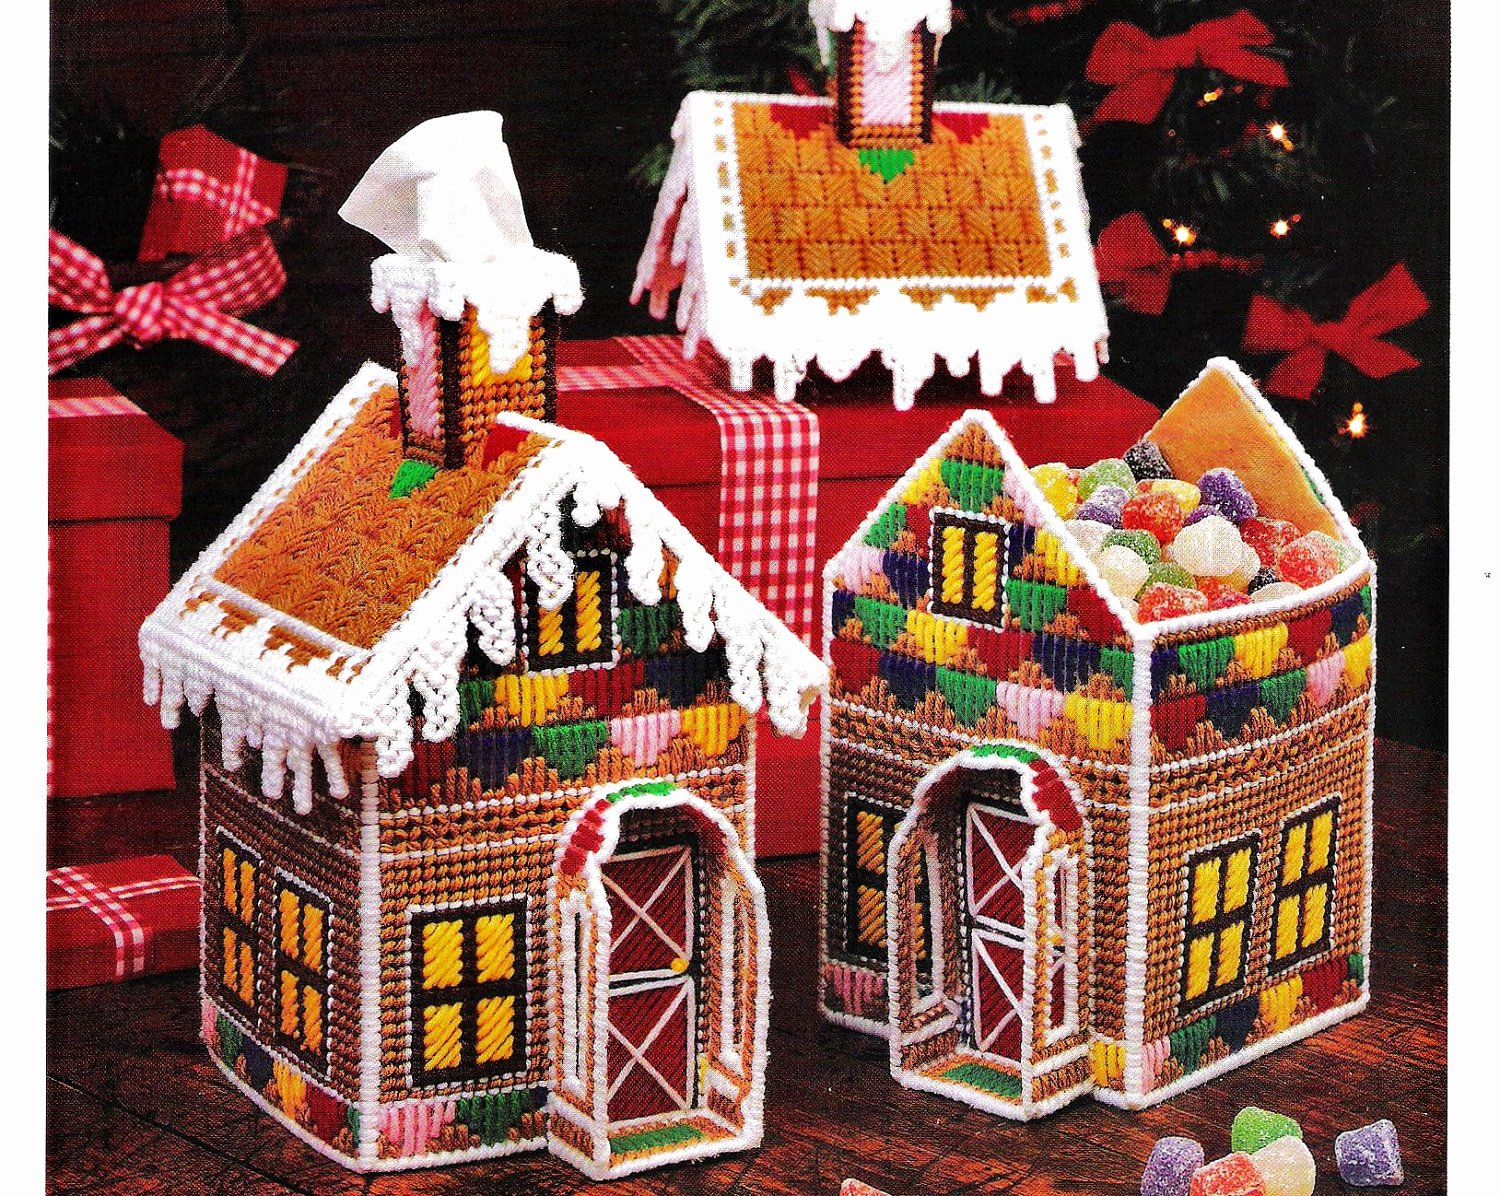 Ginger Bread House Patterns Luxury Plastic Canvas Gingerbread House Pattern by Stitchyspot On